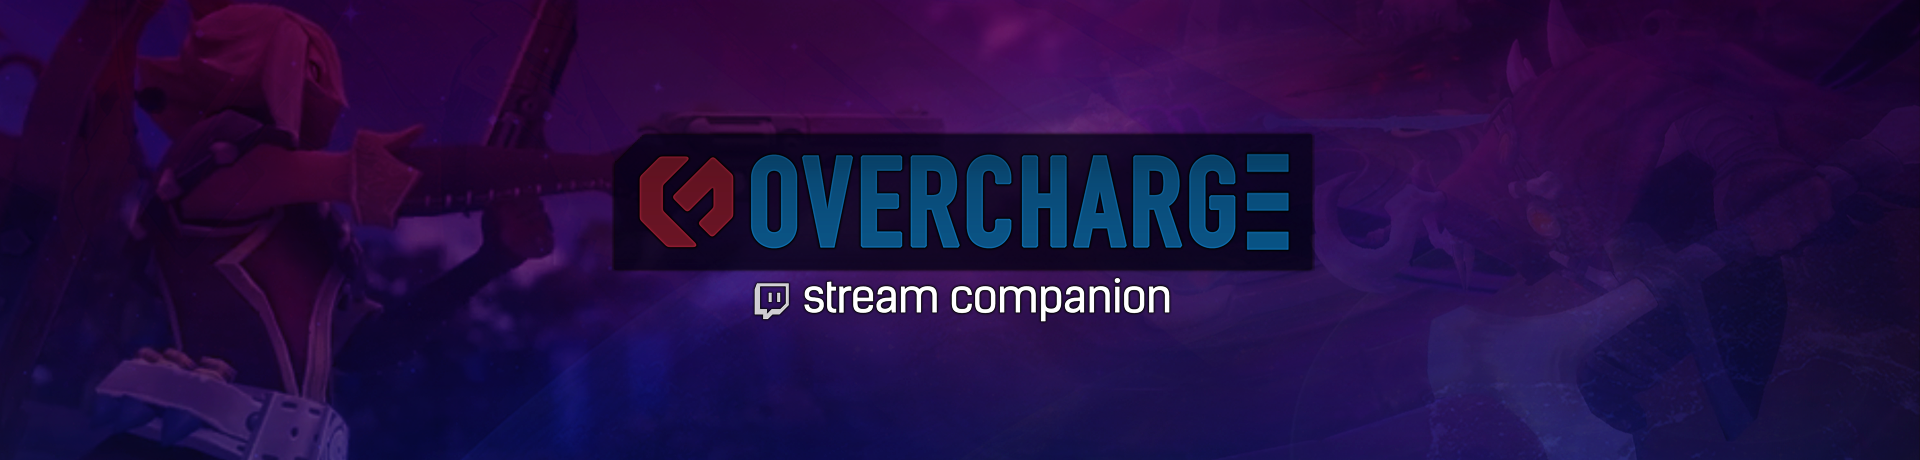 Battlerite Overcharge.tv